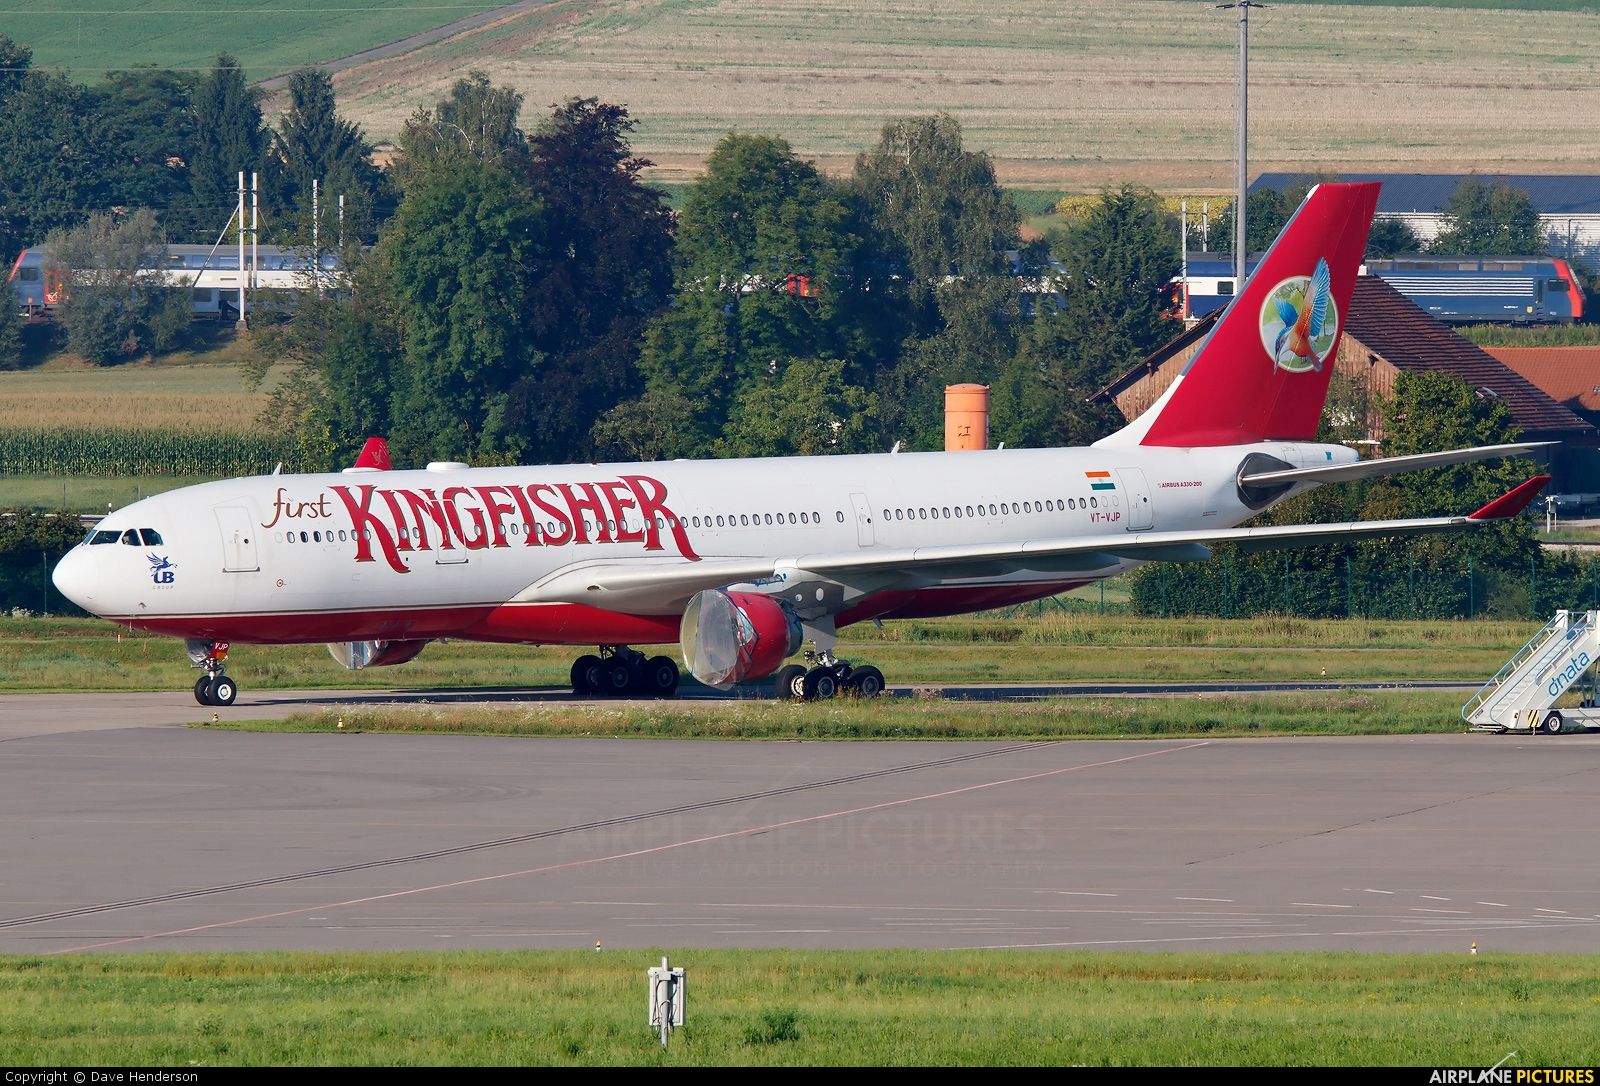 Kingfisher Airlines VT-VJP aircraft at Zurich